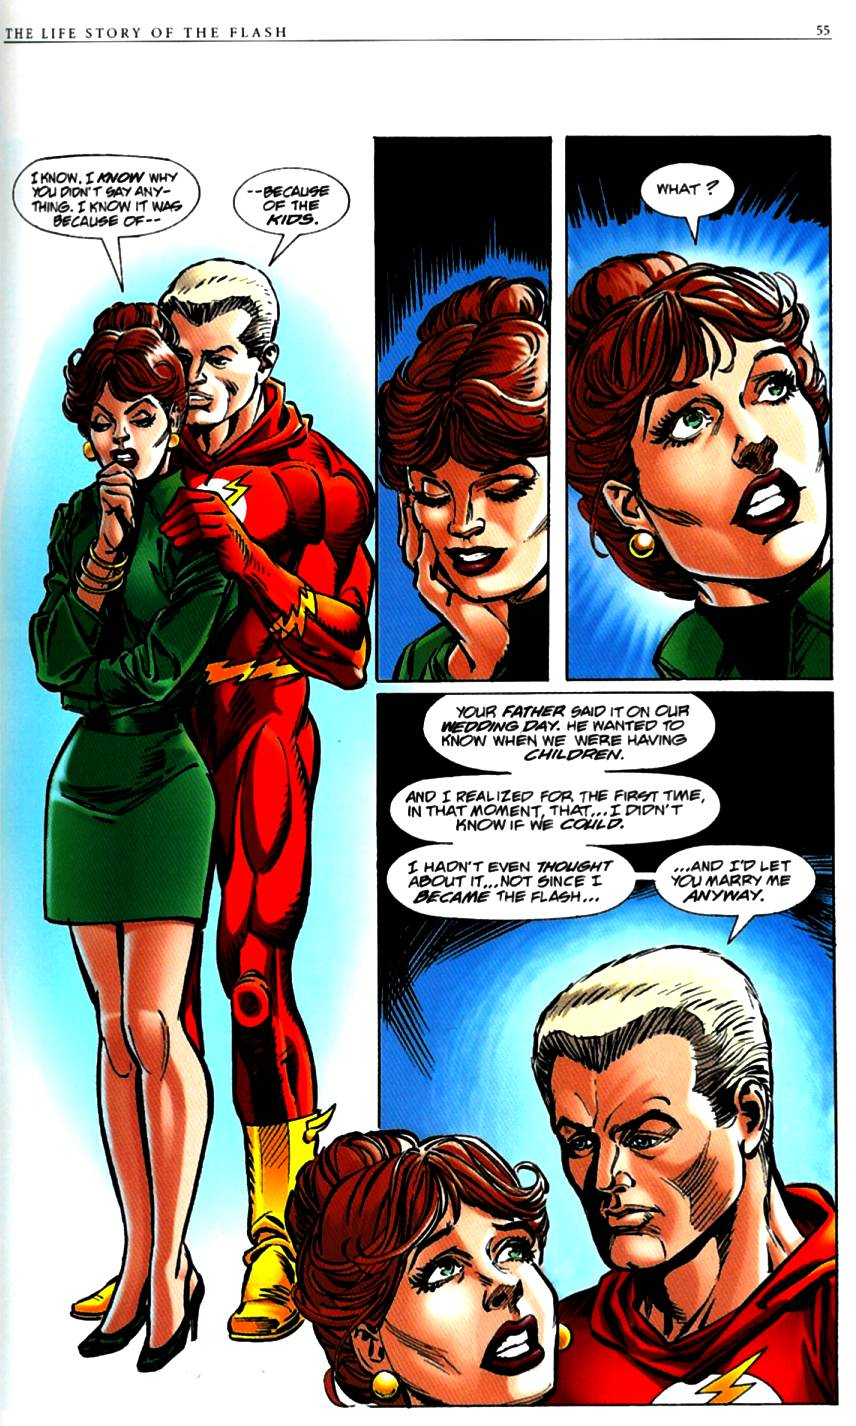 Read online The Life Story of the Flash comic -  Issue # Full - 57